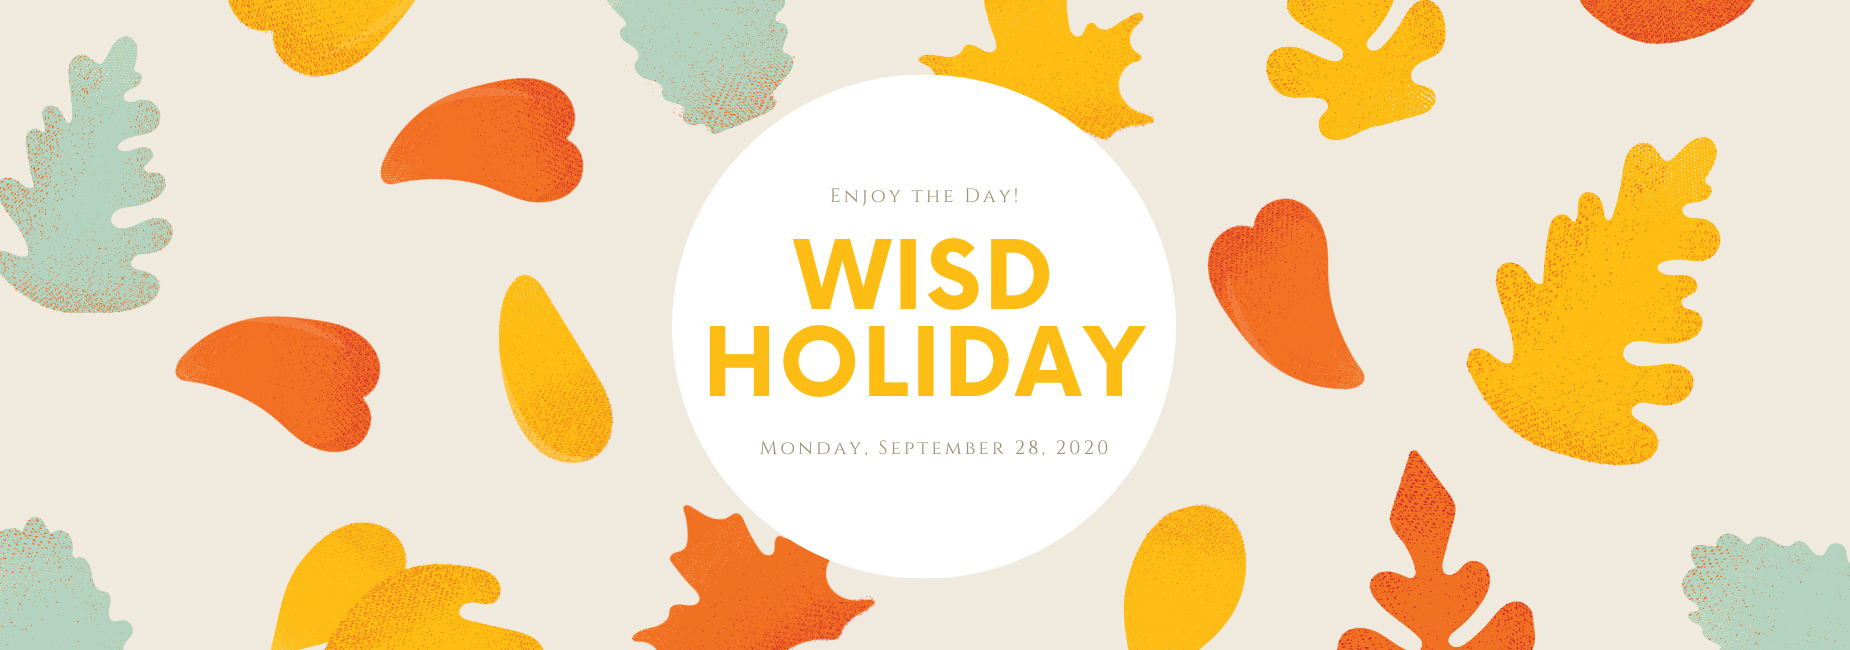 graphic with fall leaves describes holiday on September 28